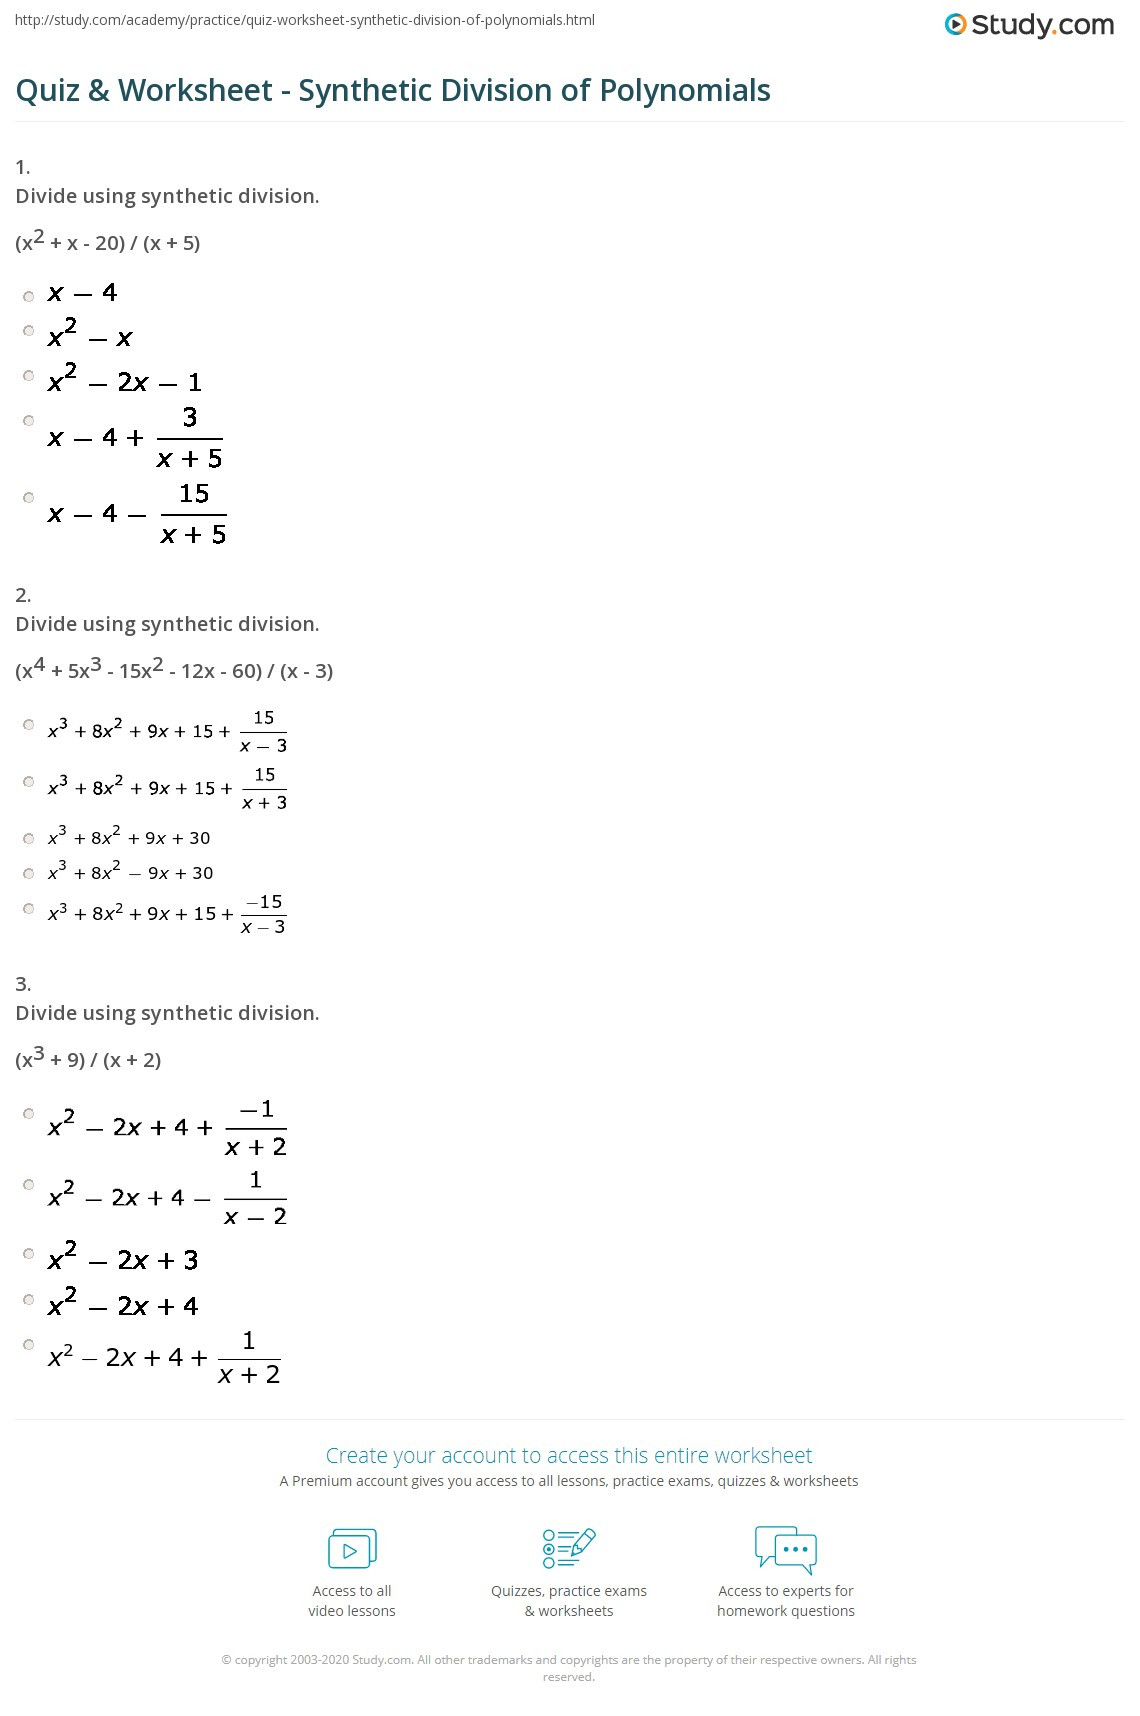 quiz worksheet synthetic division of polynomials study